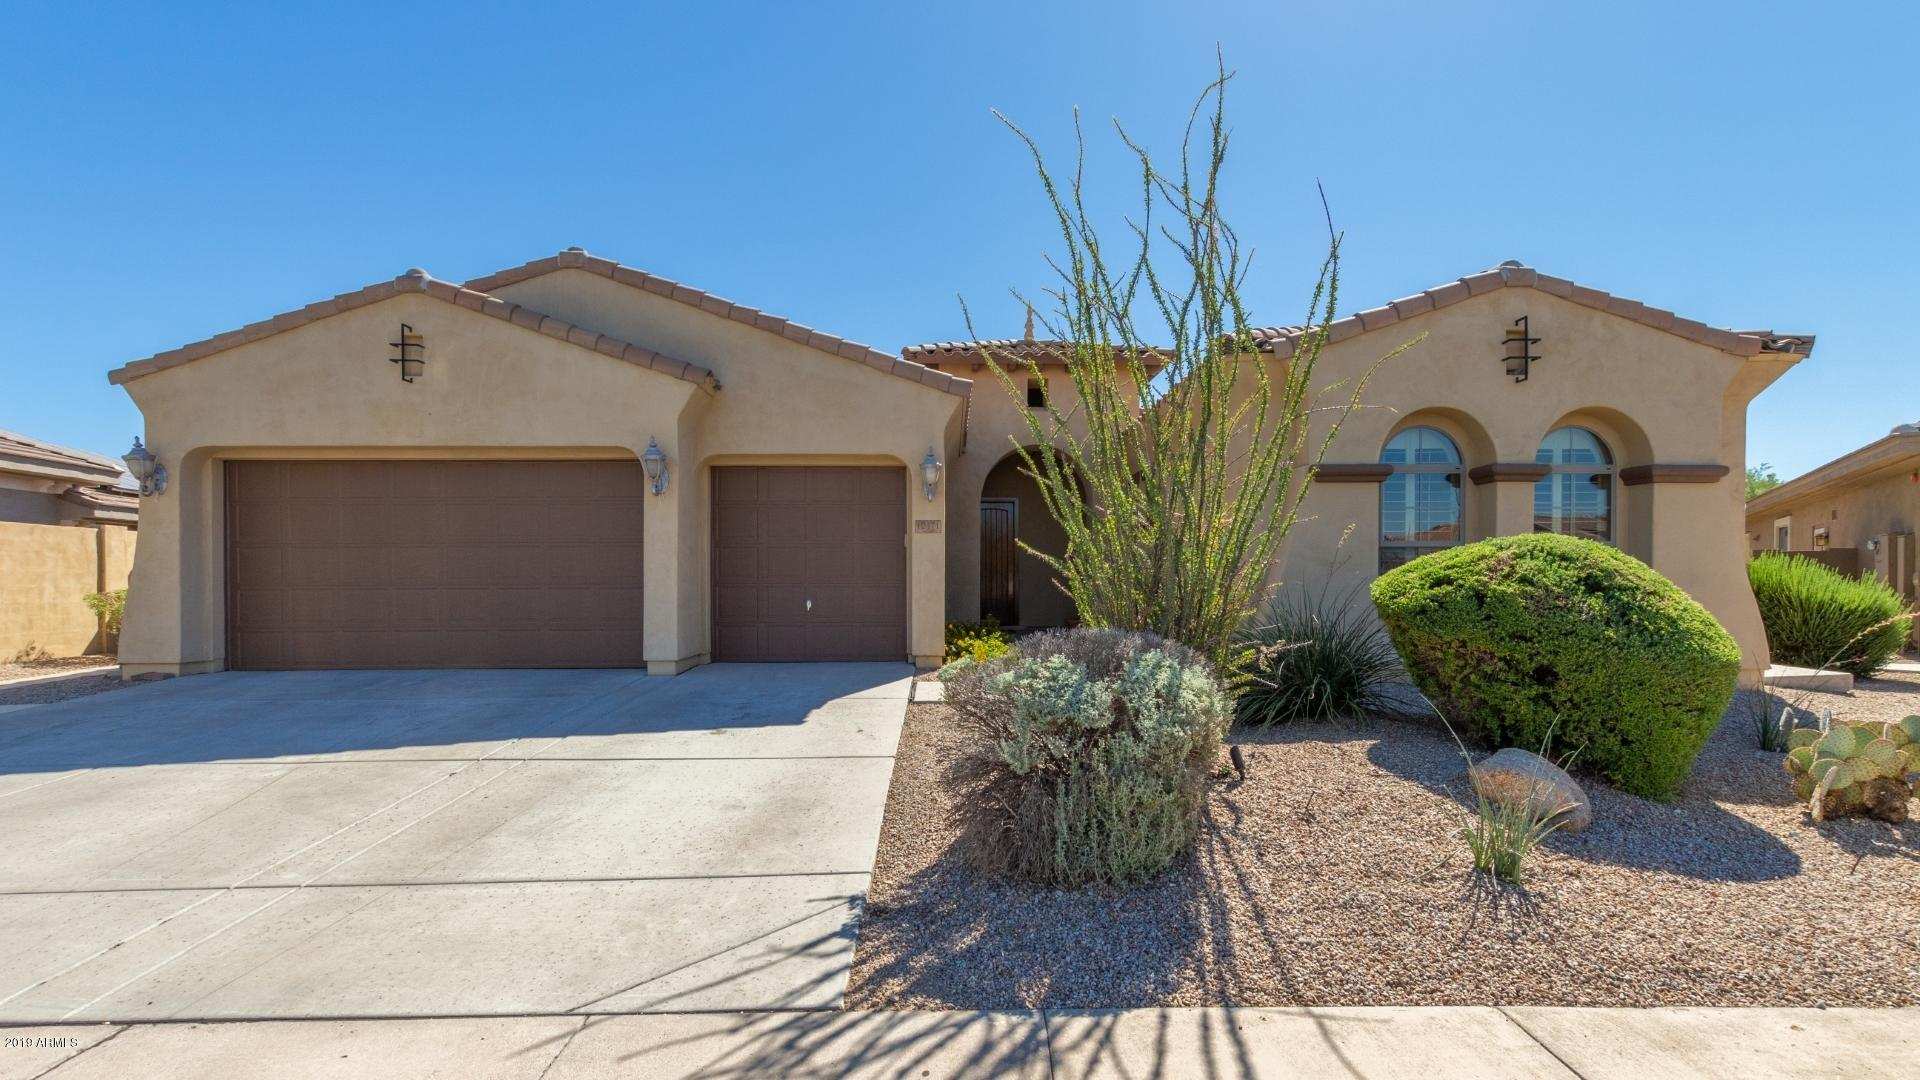 Photo of 12471 S 179TH Lane, Goodyear, AZ 85338